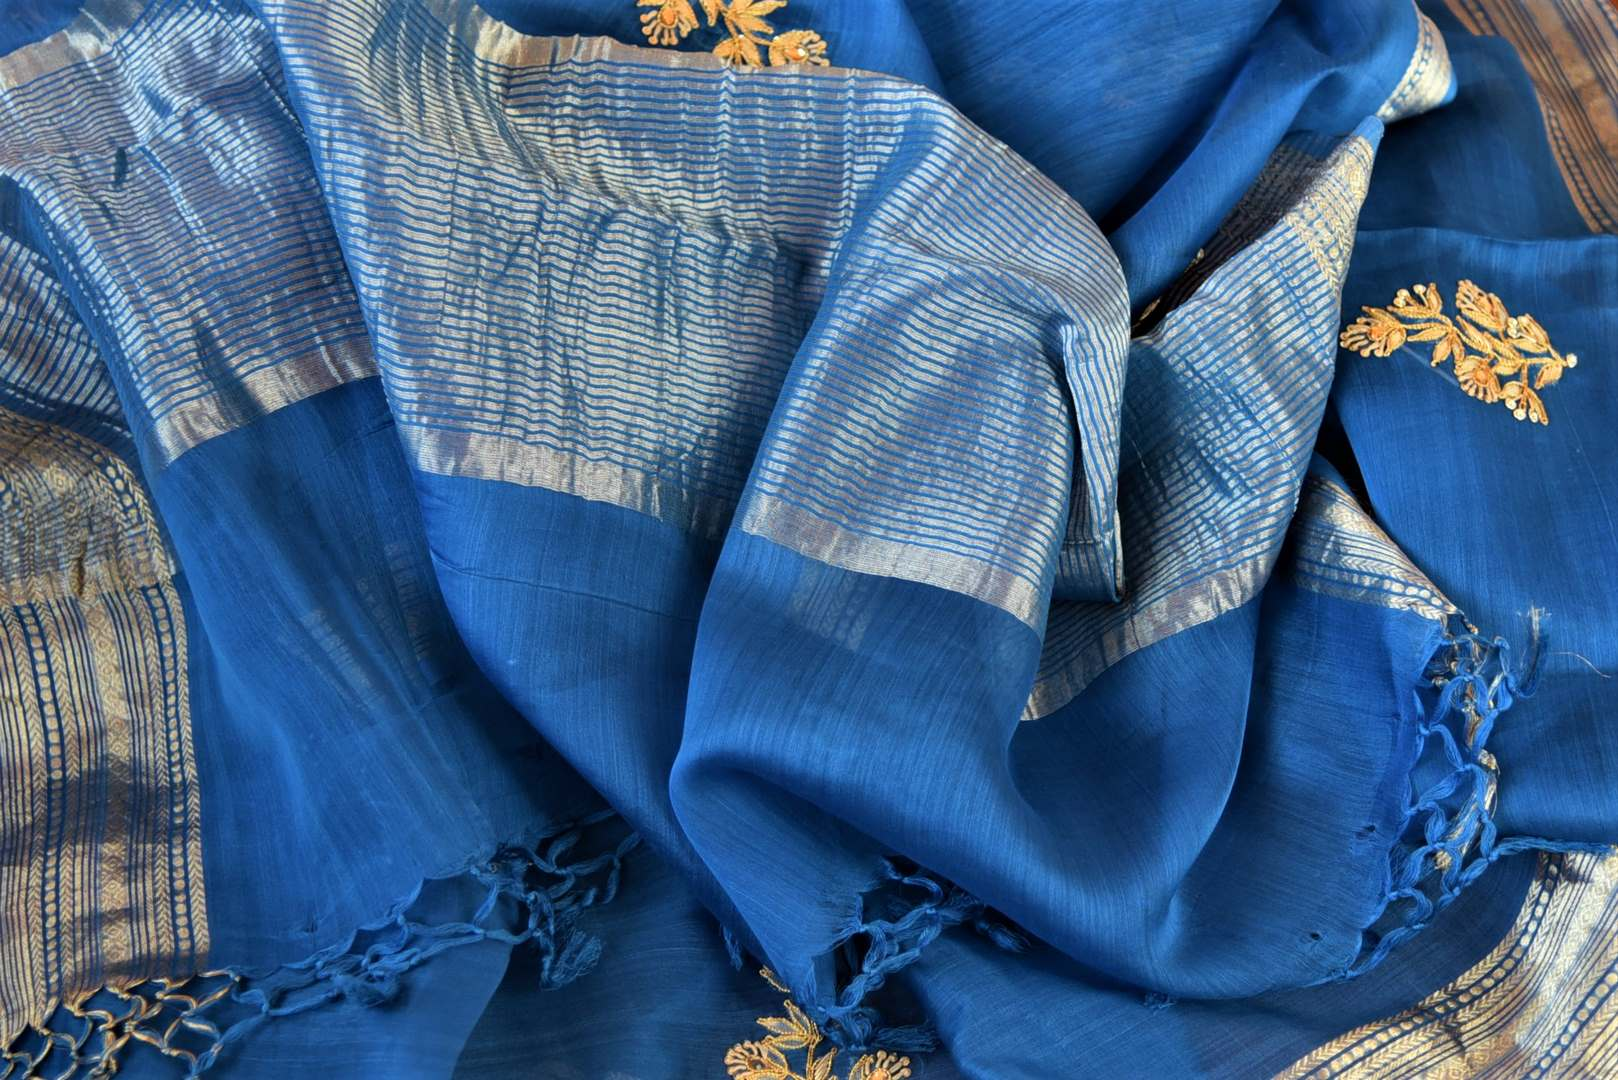 Buy blue gota patti embroidery chanderi sari online in USA with zari border. Go for a distinct and tasteful saree style on special occasions with handwoven sarees, chanderi sarees with blouse from Pure Elegance Indian fashion store in USA.-details